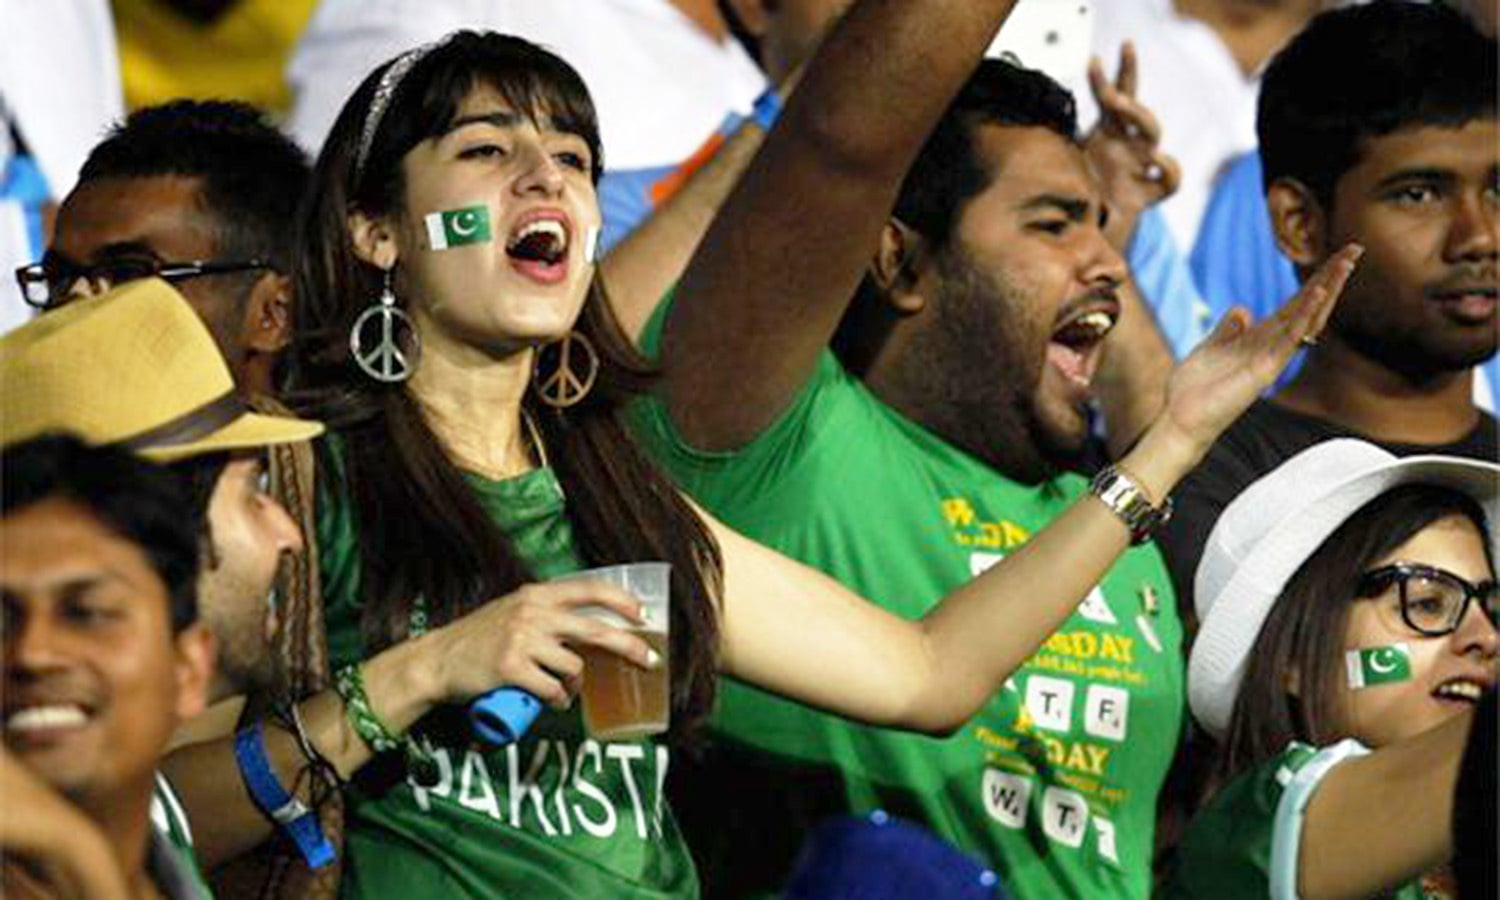 Section of a crowd at Lahore's Gaddafi Cricket Stadium. (Pic: The News)